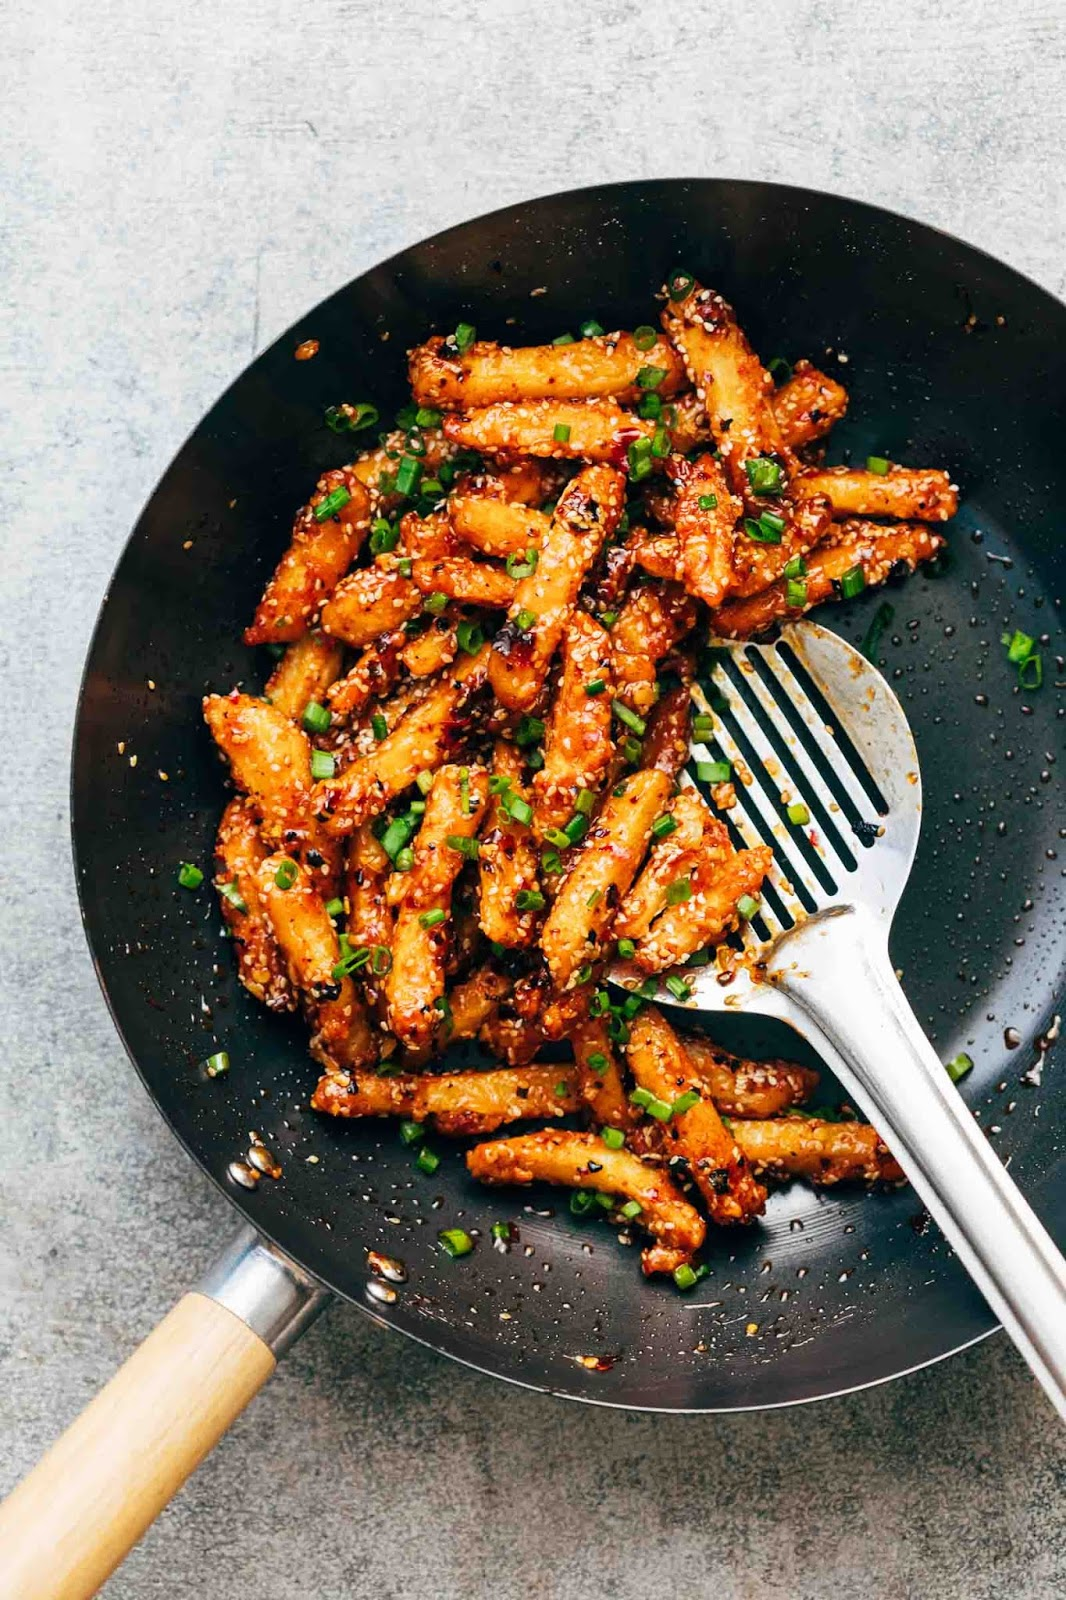 Crispy Honey Chilli Potatoes are a super addictive snack - fried potato fingers are tossed in a sesame honey chilli sauce that's sweet and spicy and will give you sticky fingers that you'll be licking to get every last bit of sauce!